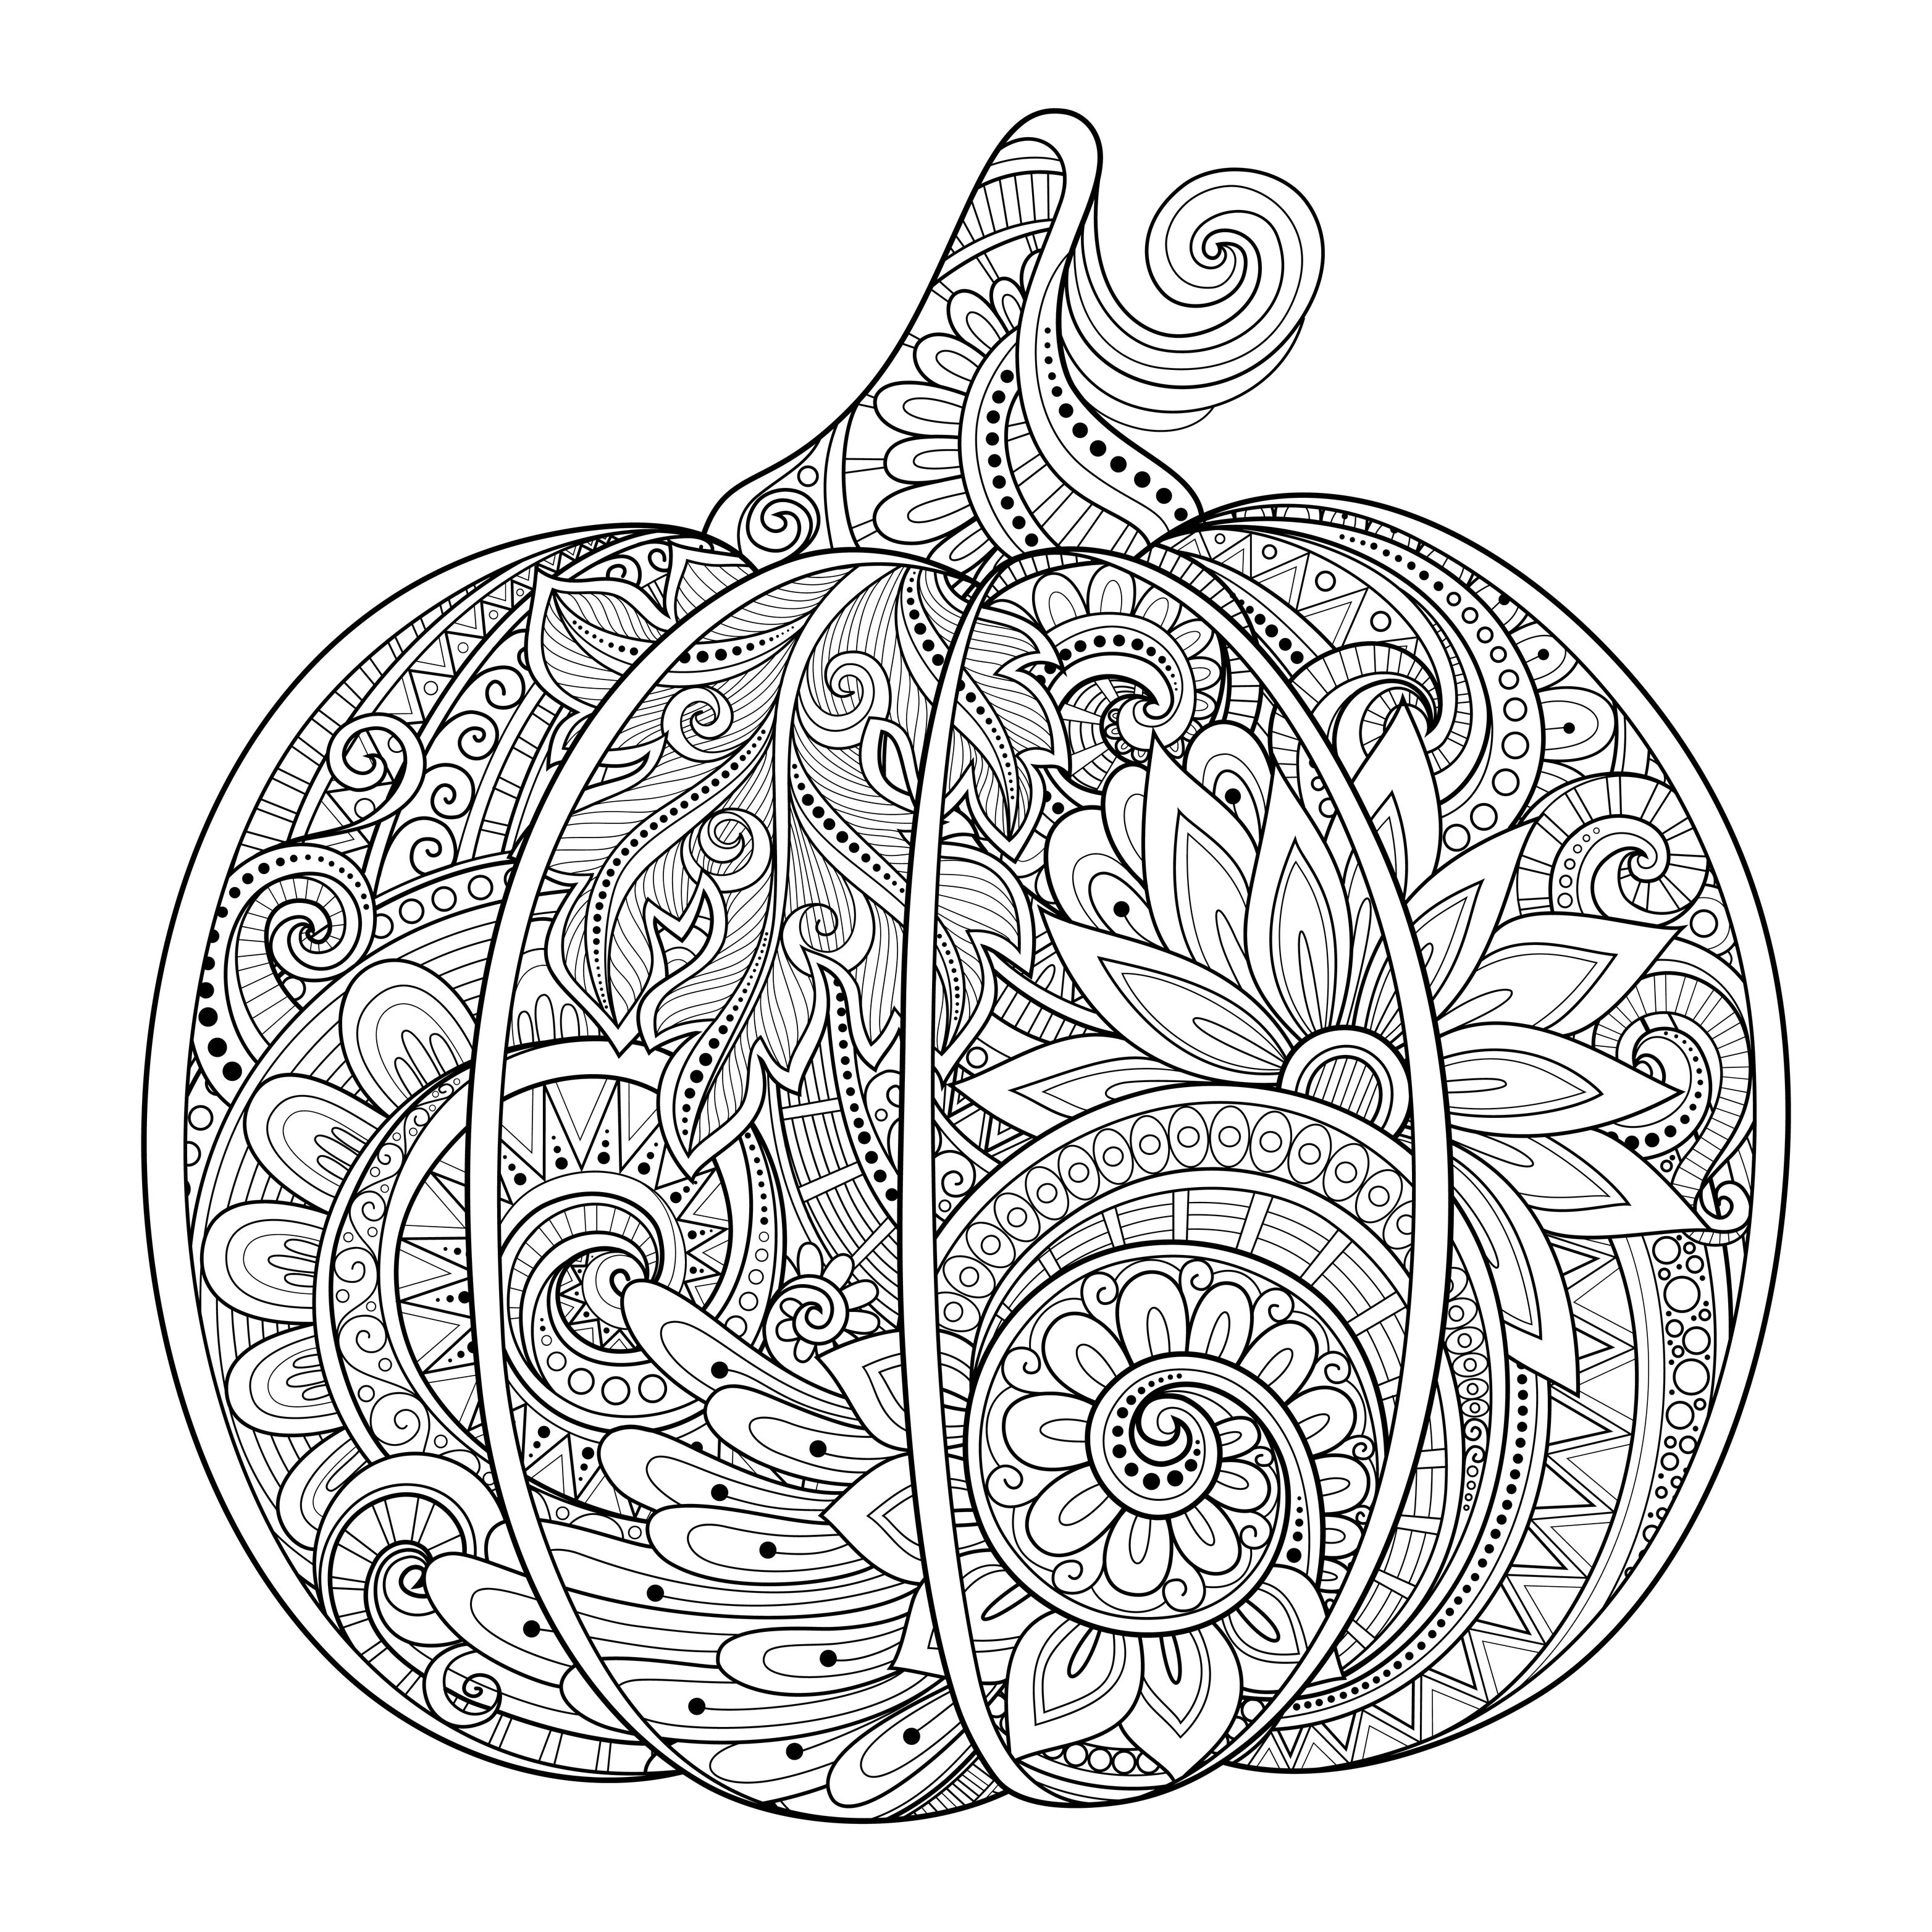 Coloring pages for adults - A Zentangle Pumpkin Coloring Page From The Gallery Events Halloween Artist